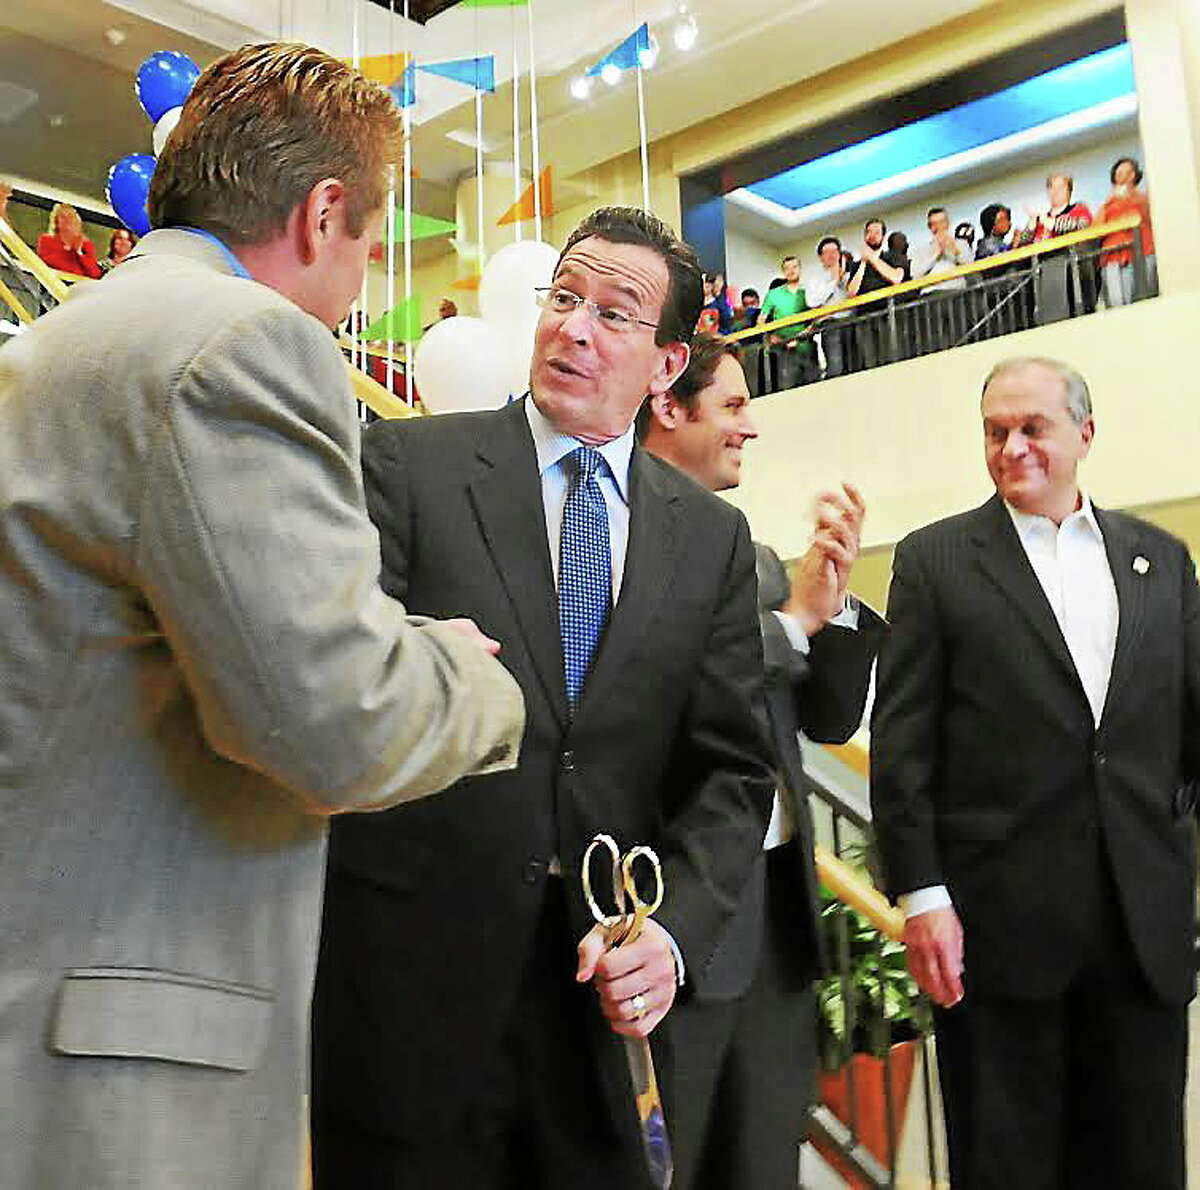 New Haven Register file photo Left to right: Mark Volchek, chairman and CFO of Higher One Holdings; Gov. Dannel P. Malloy; Miles Lasater, COO of Higher One; and former New Haven Mayor John DeStefano.